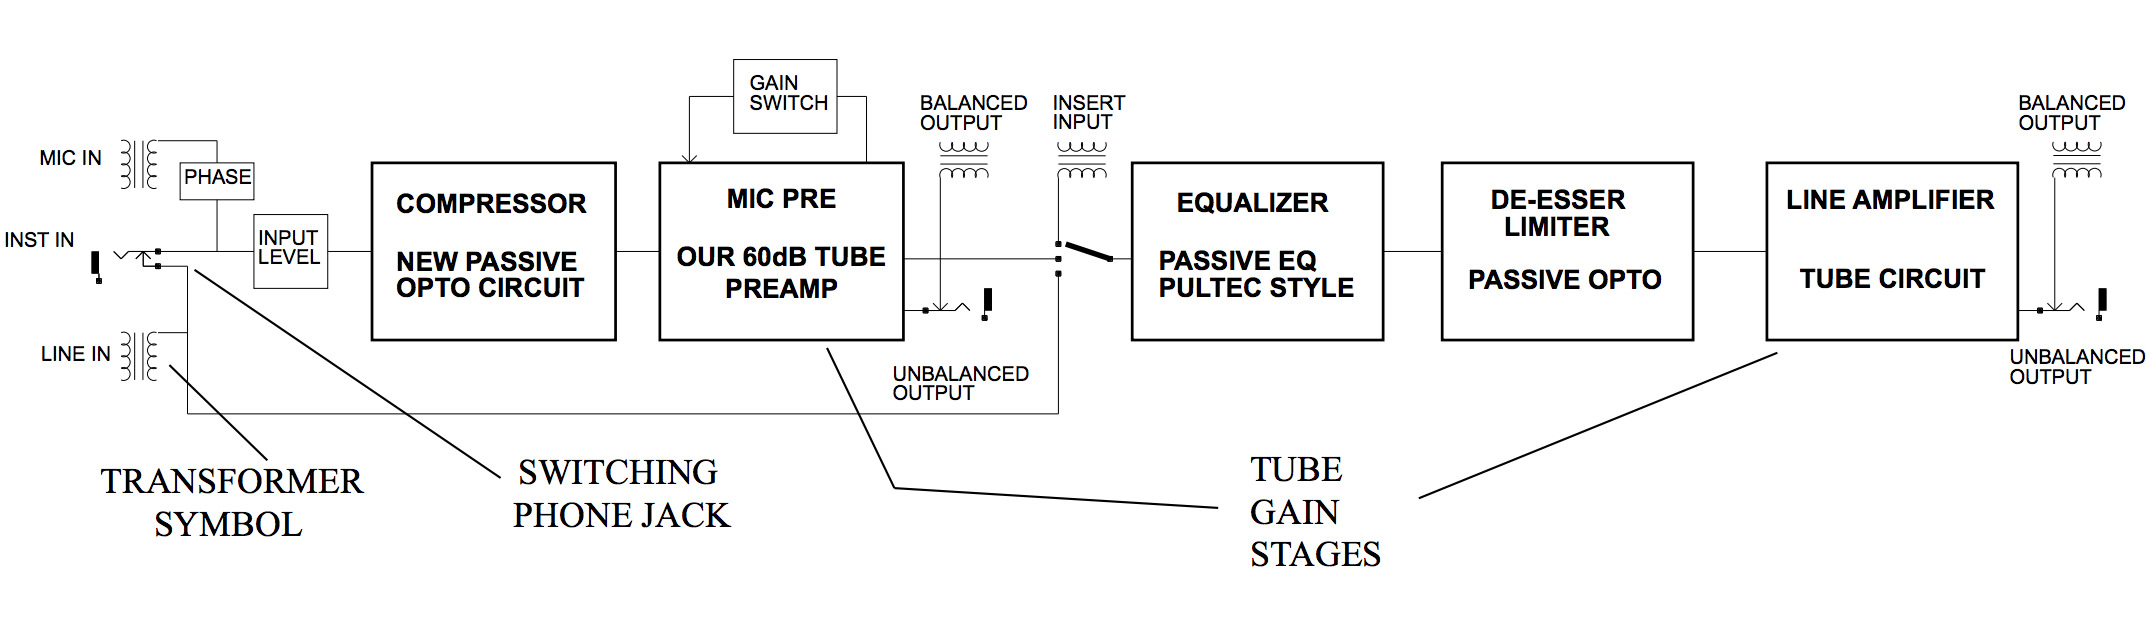 small resolution of a block diagram illustrating the audio signal flow of the manley labs voxbox channel strip